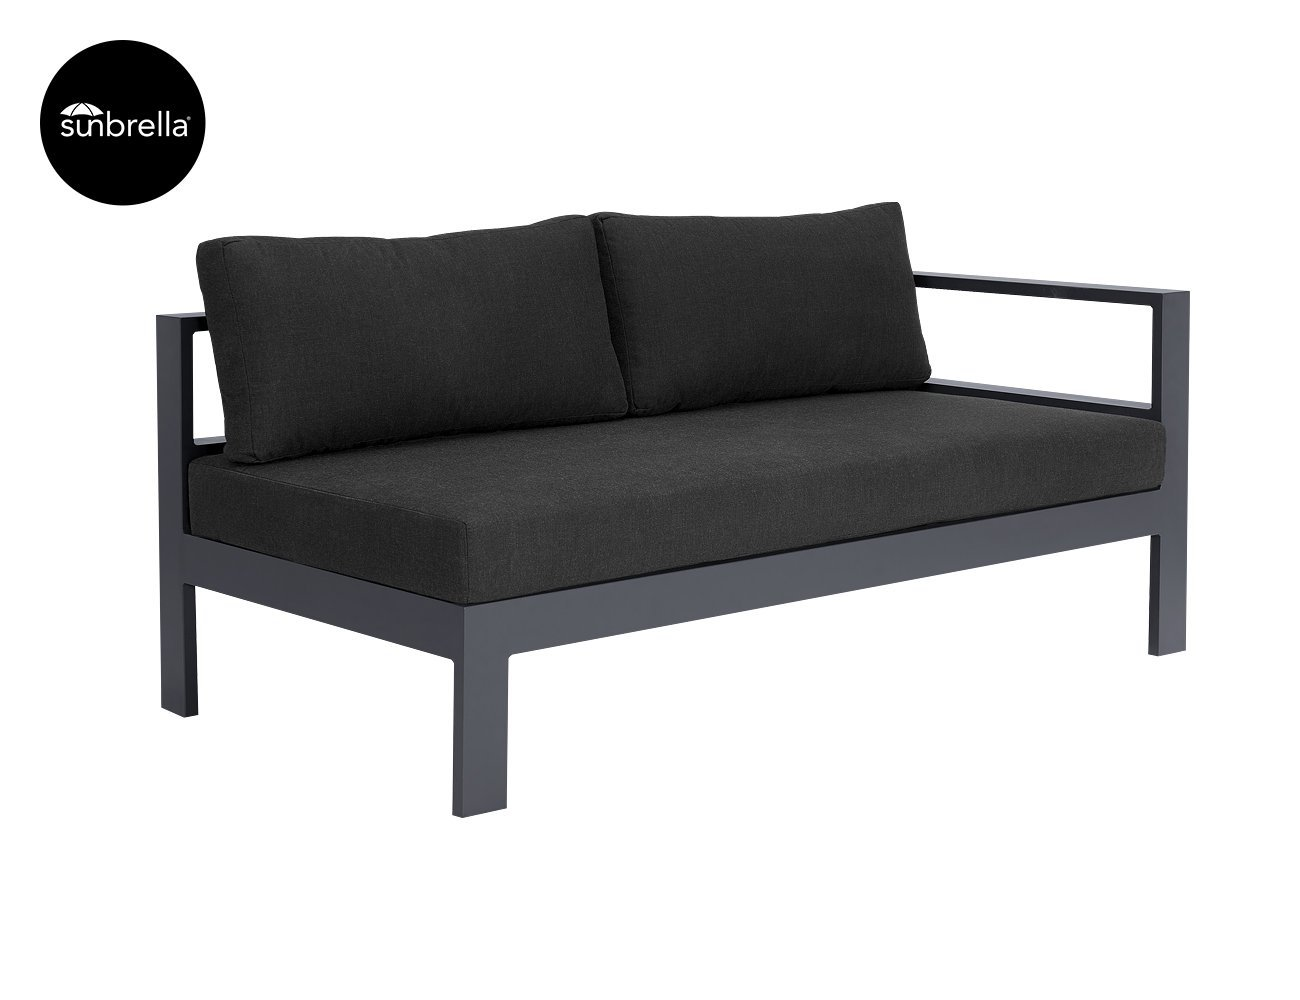 Sandpiper Outdoor Sectional Right Sofa - Grey